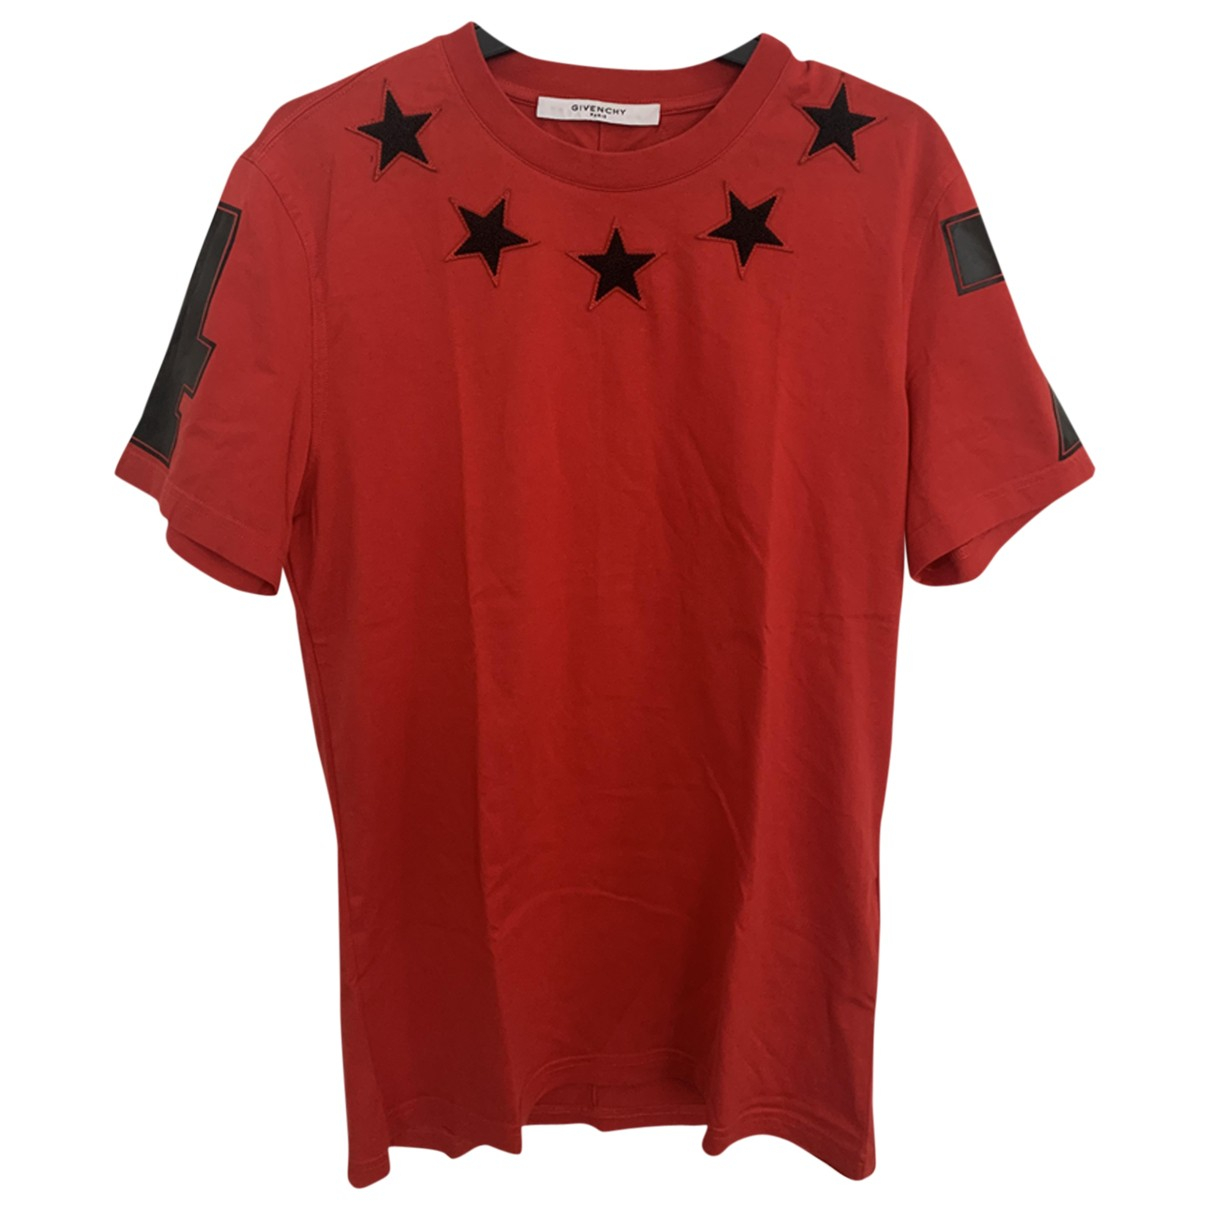 Givenchy \N Red Cotton T-shirts for Men S International